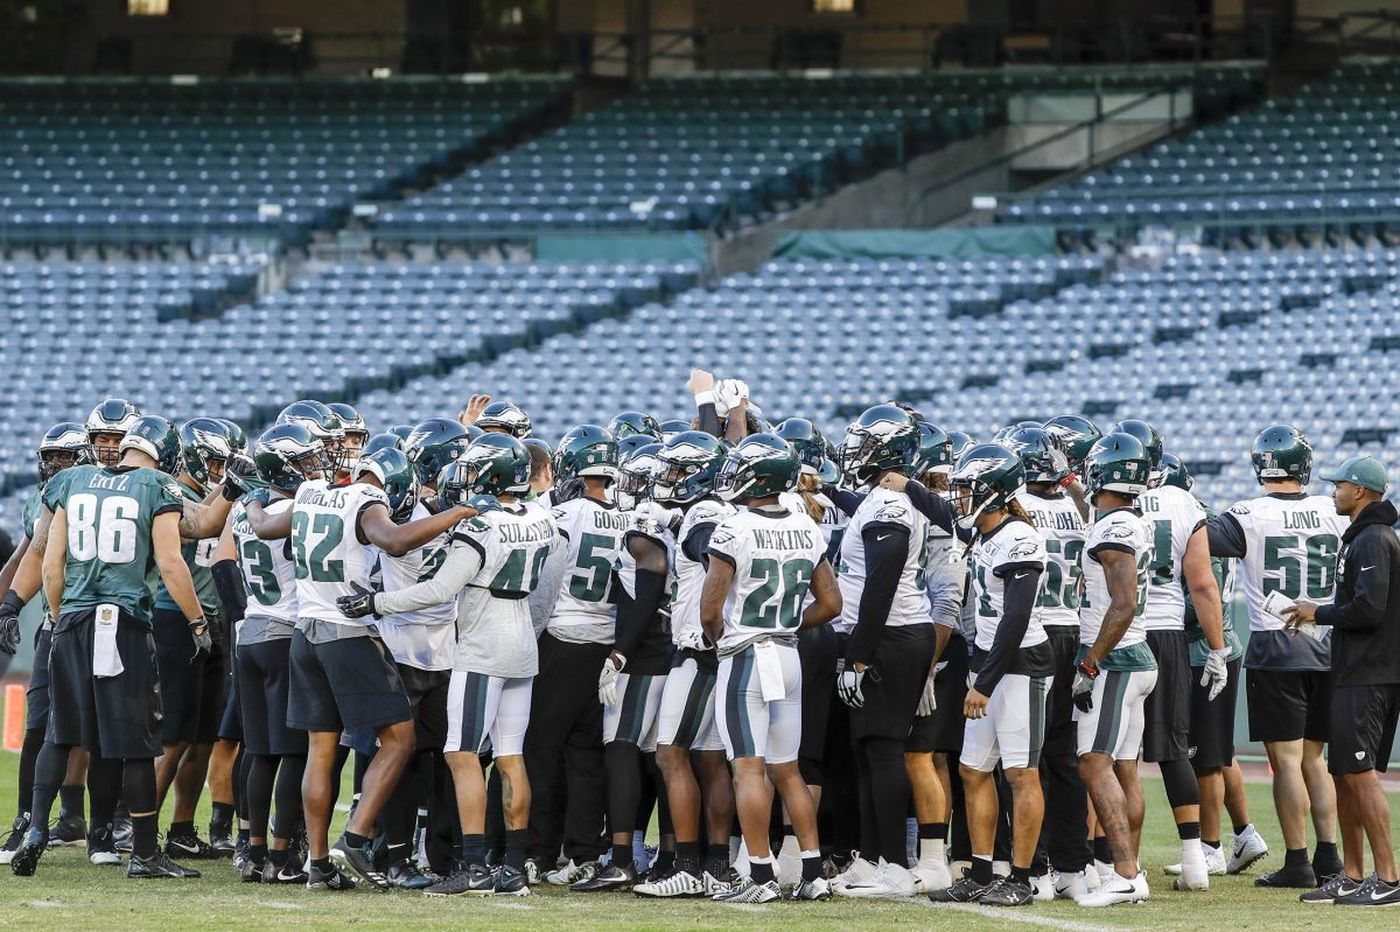 Why the Eagles' week in California was a 'precursor' to the Super Bowl | Early Birds